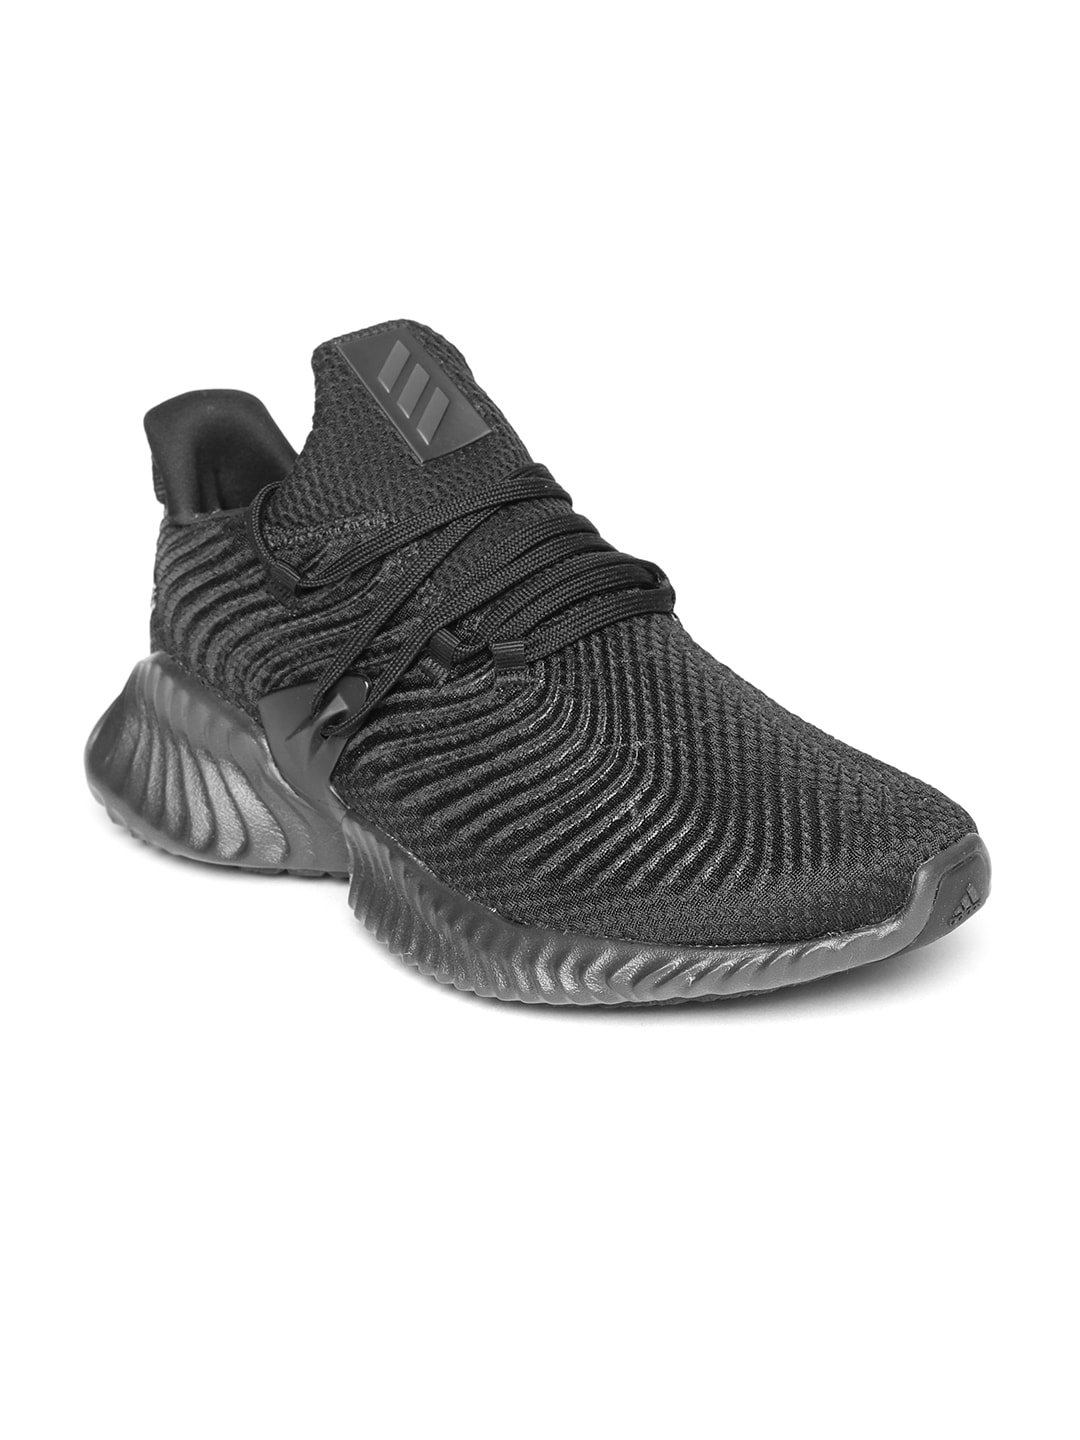 10c11a2d8 Alphabounce - Buy Alphabounce online in India